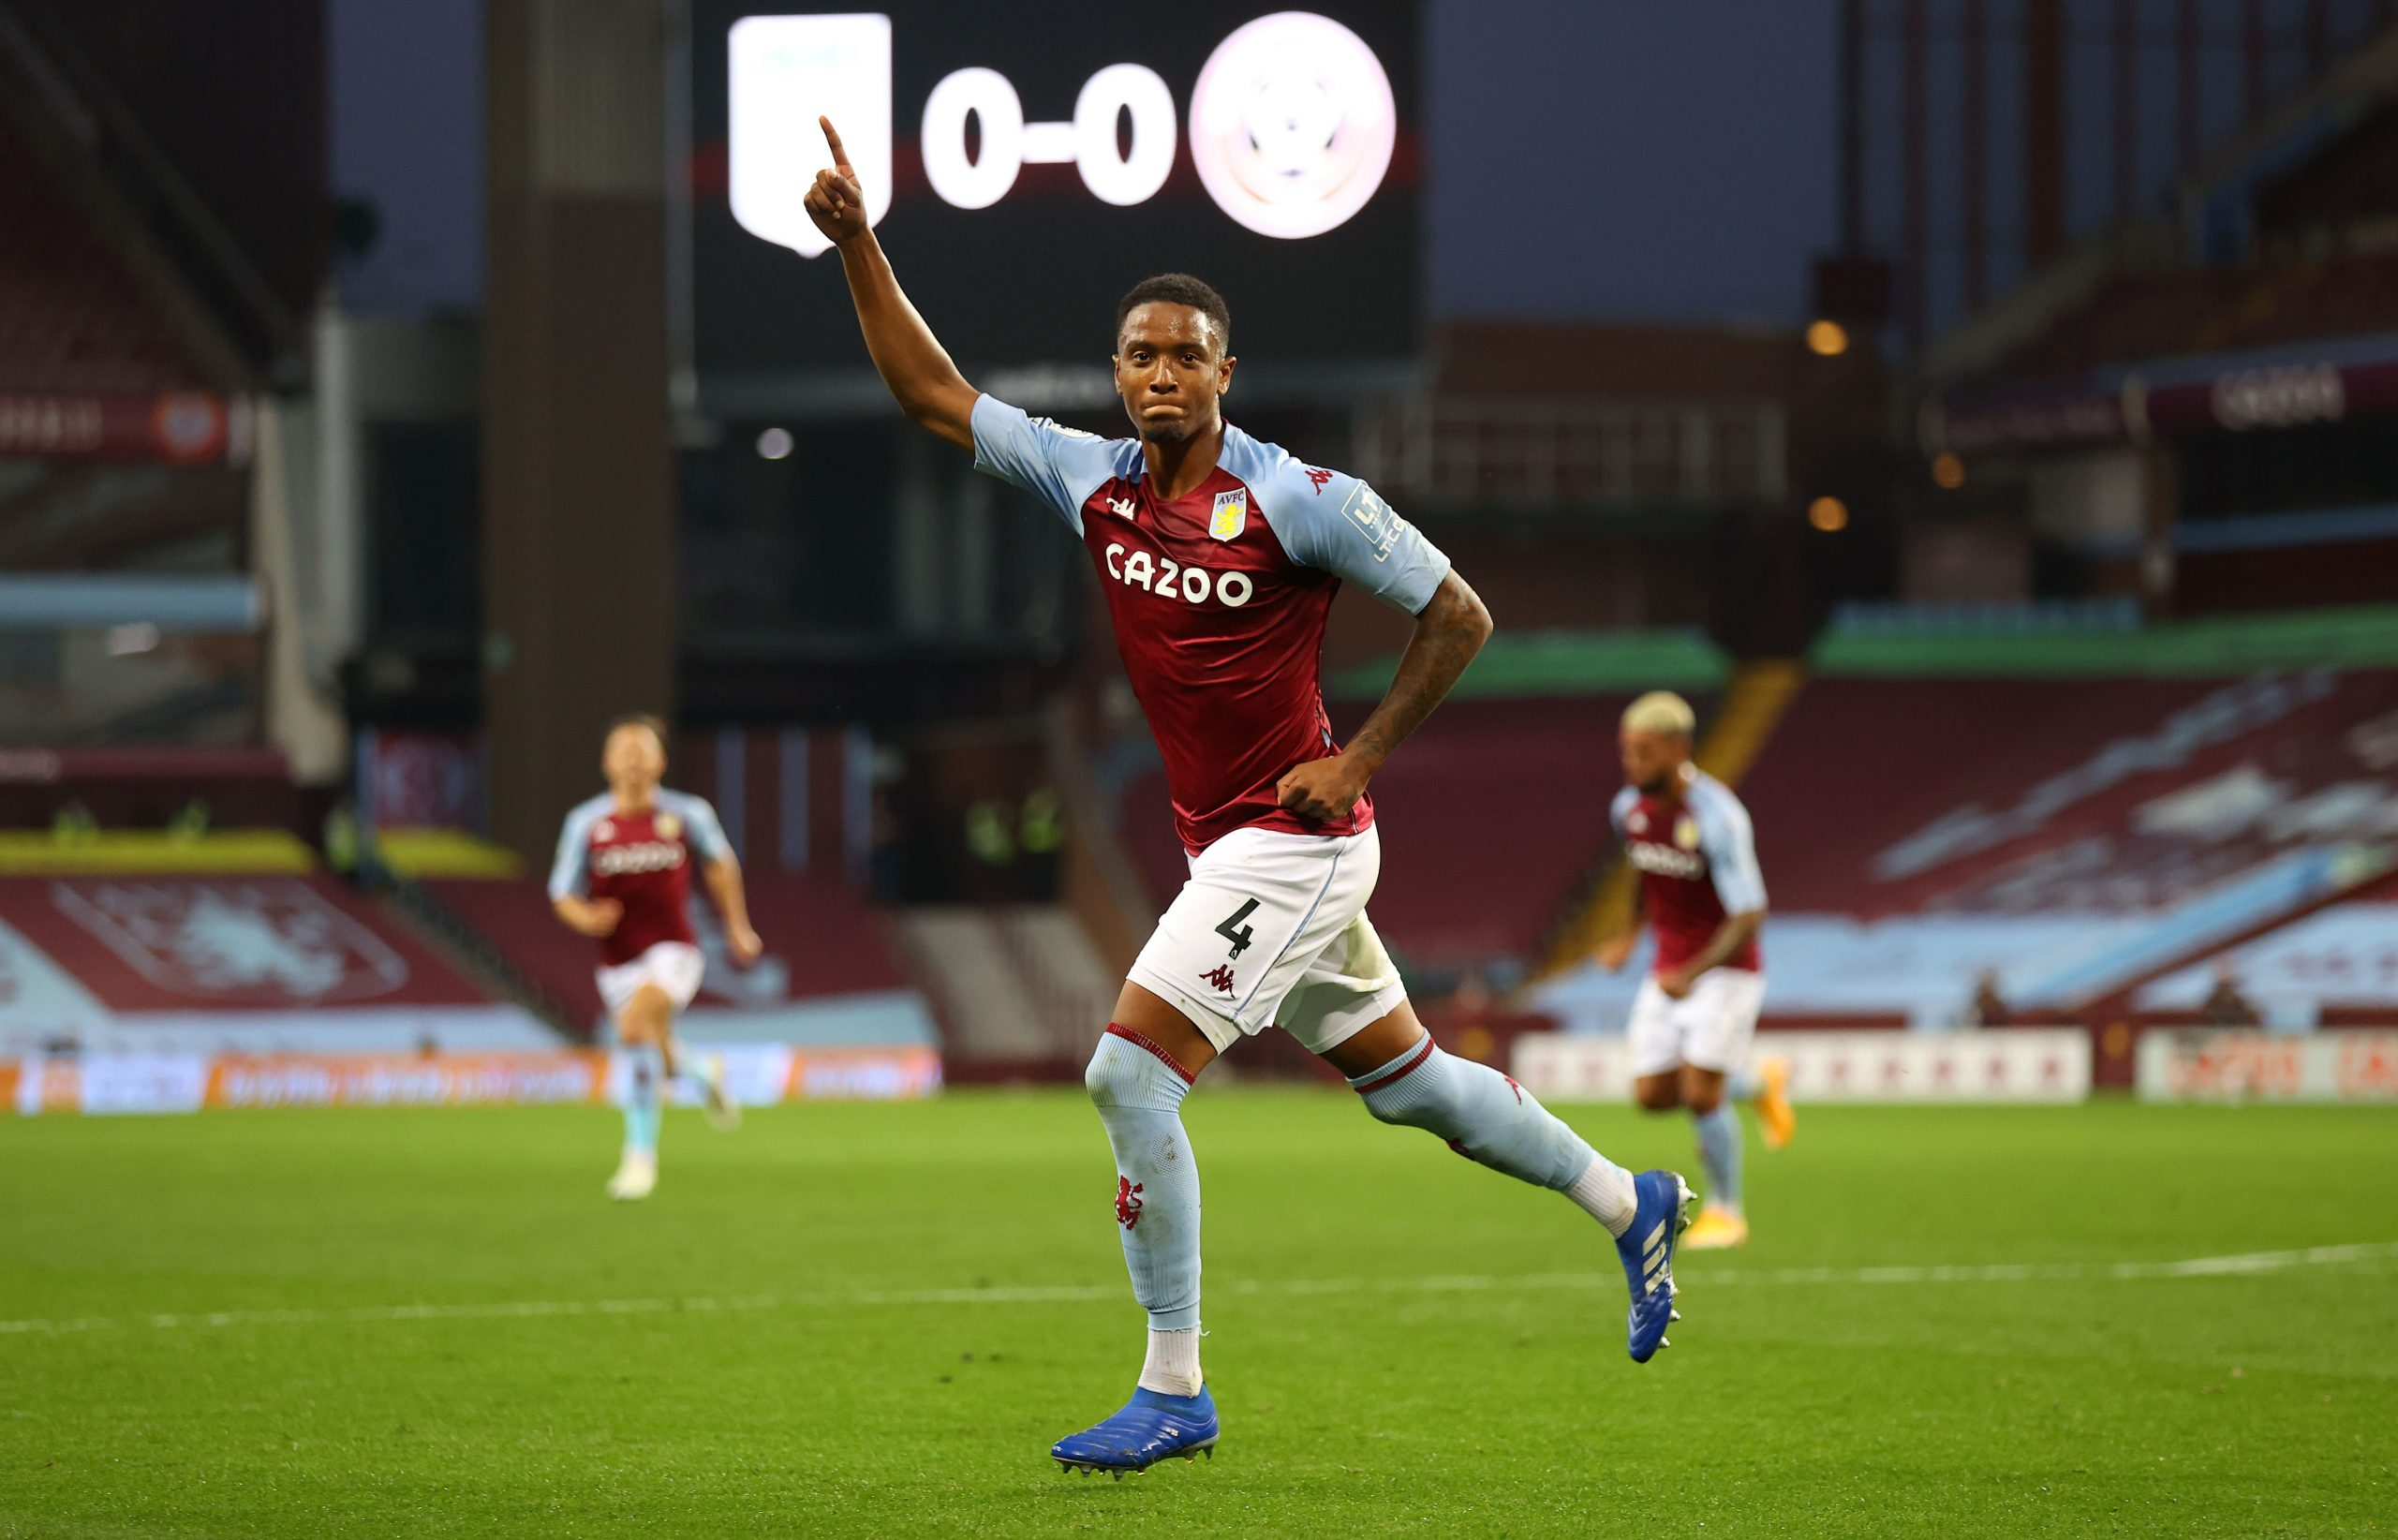 Ezri Konsa was linked with a transfer to Tottenham Hotspur in 2019. (GETTY Images)